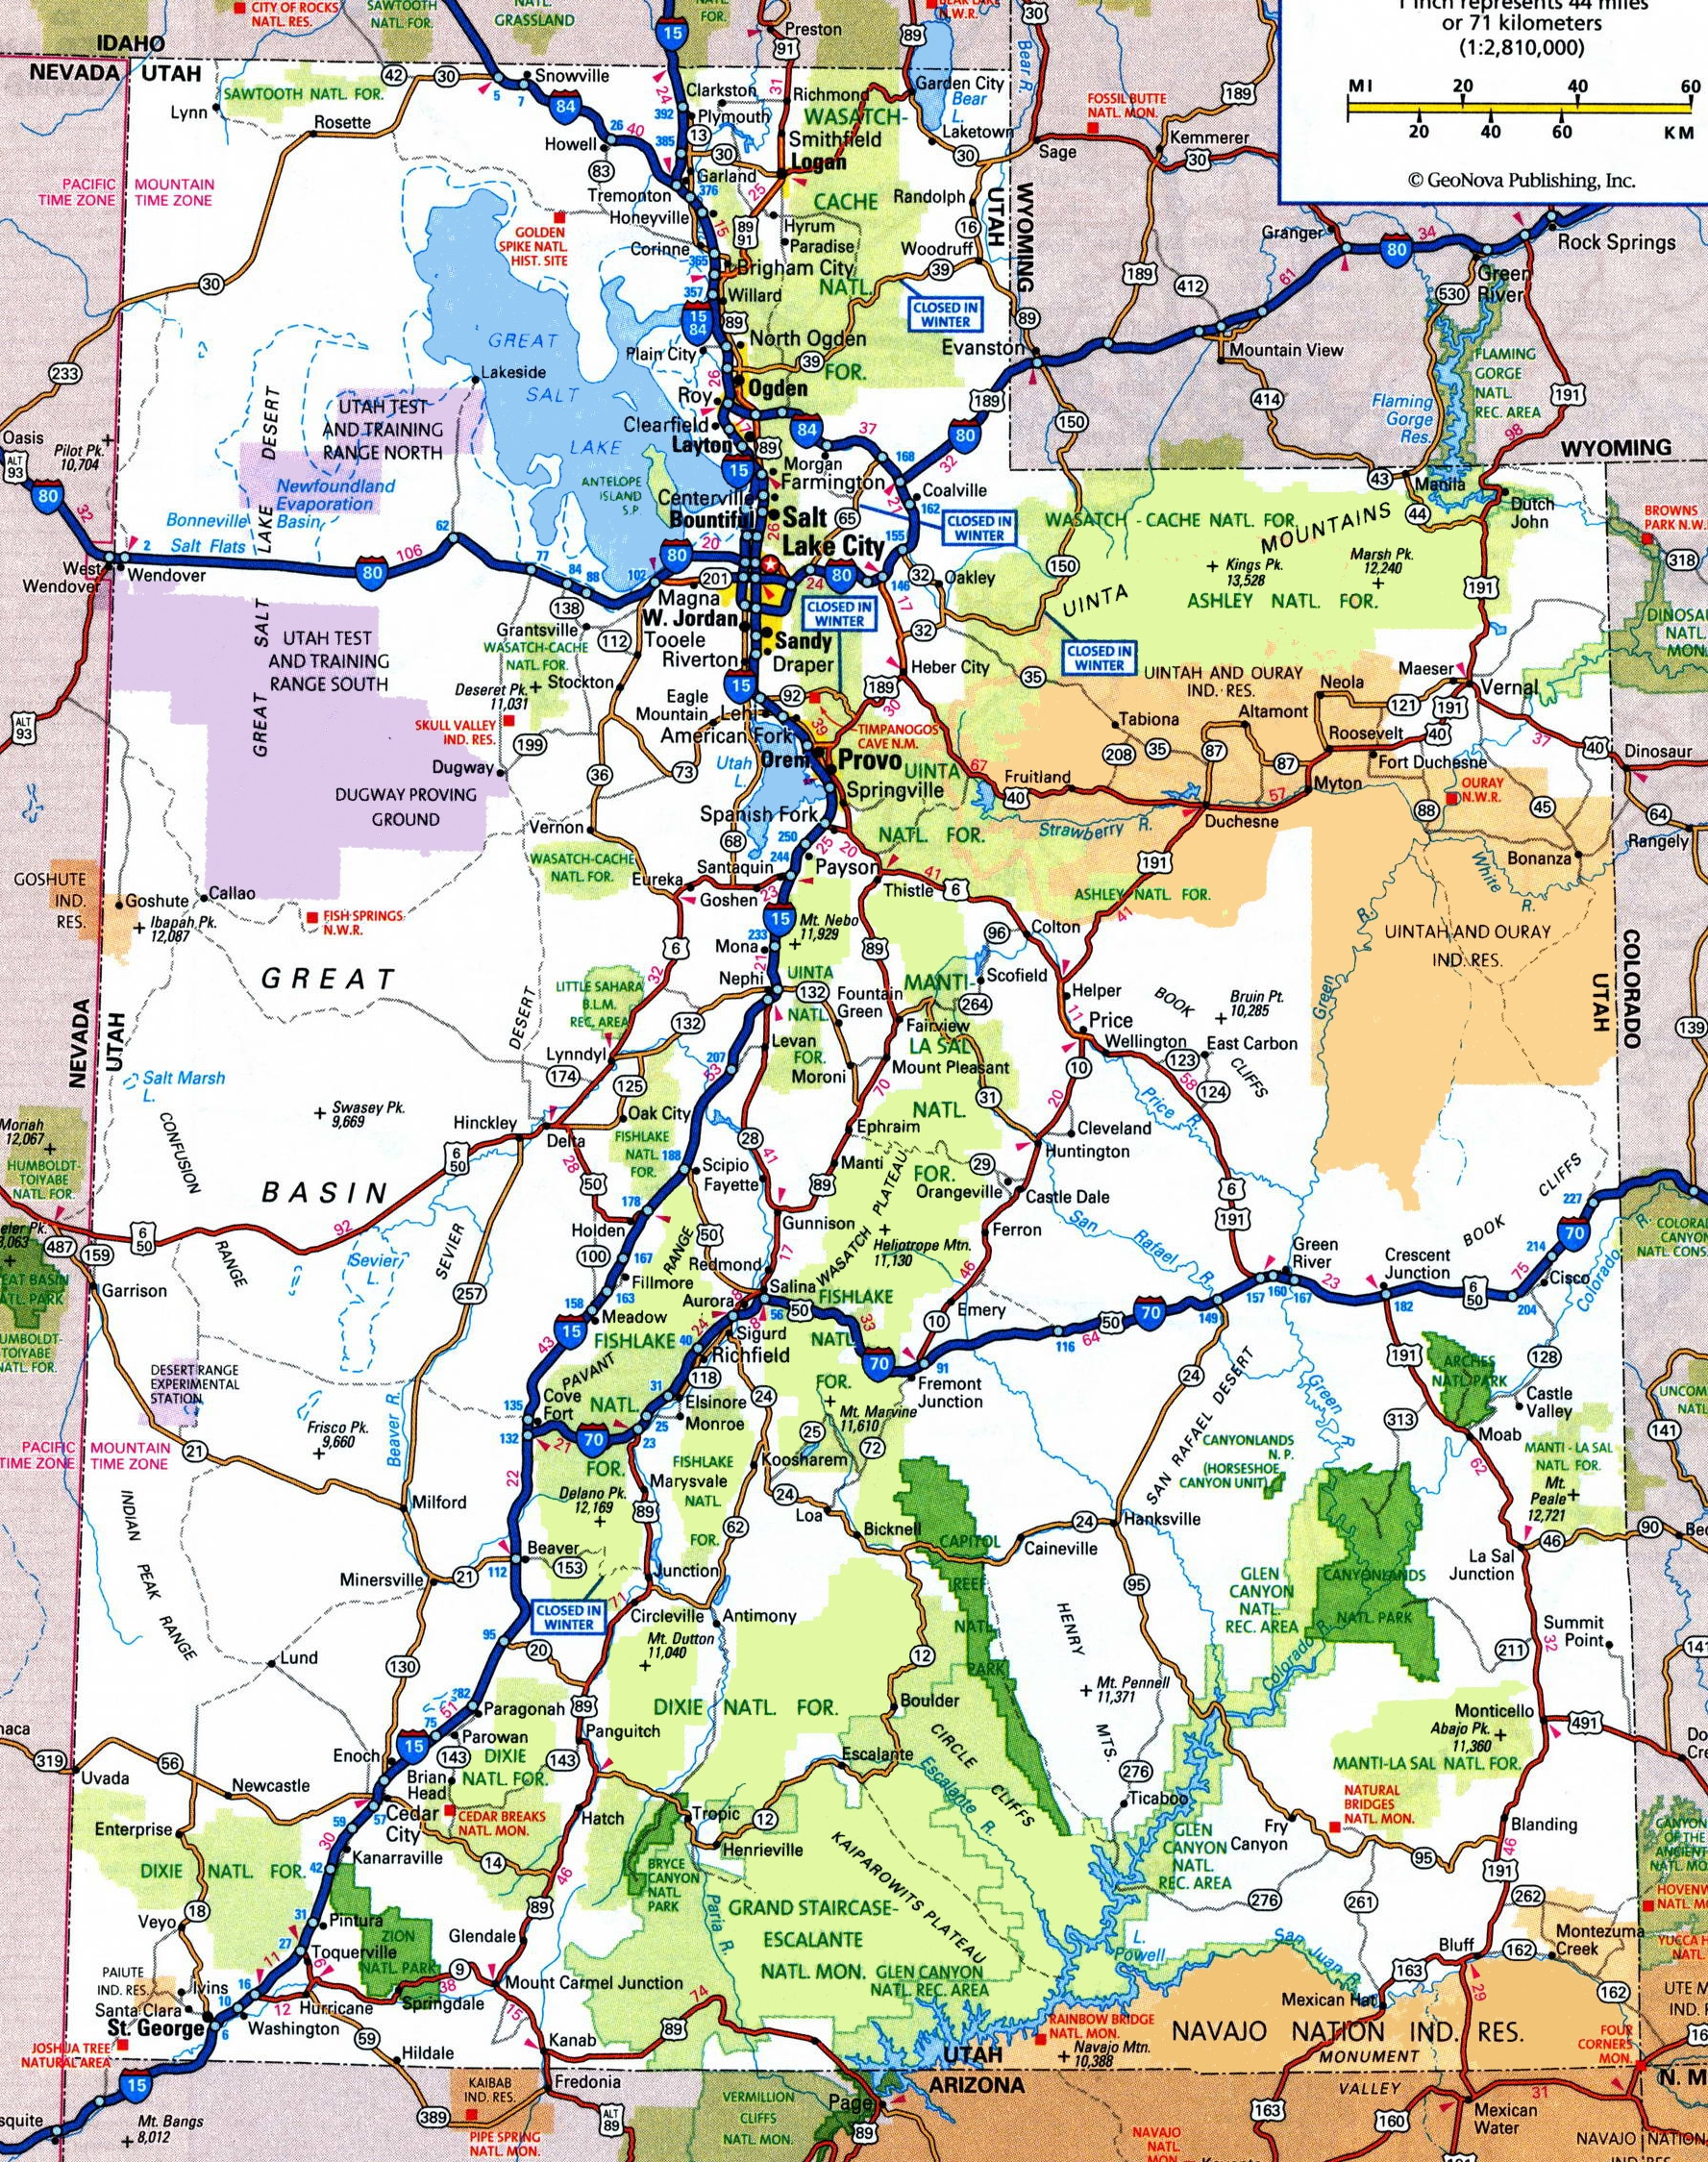 Utah Road Maps New York Map - Road maps of usa